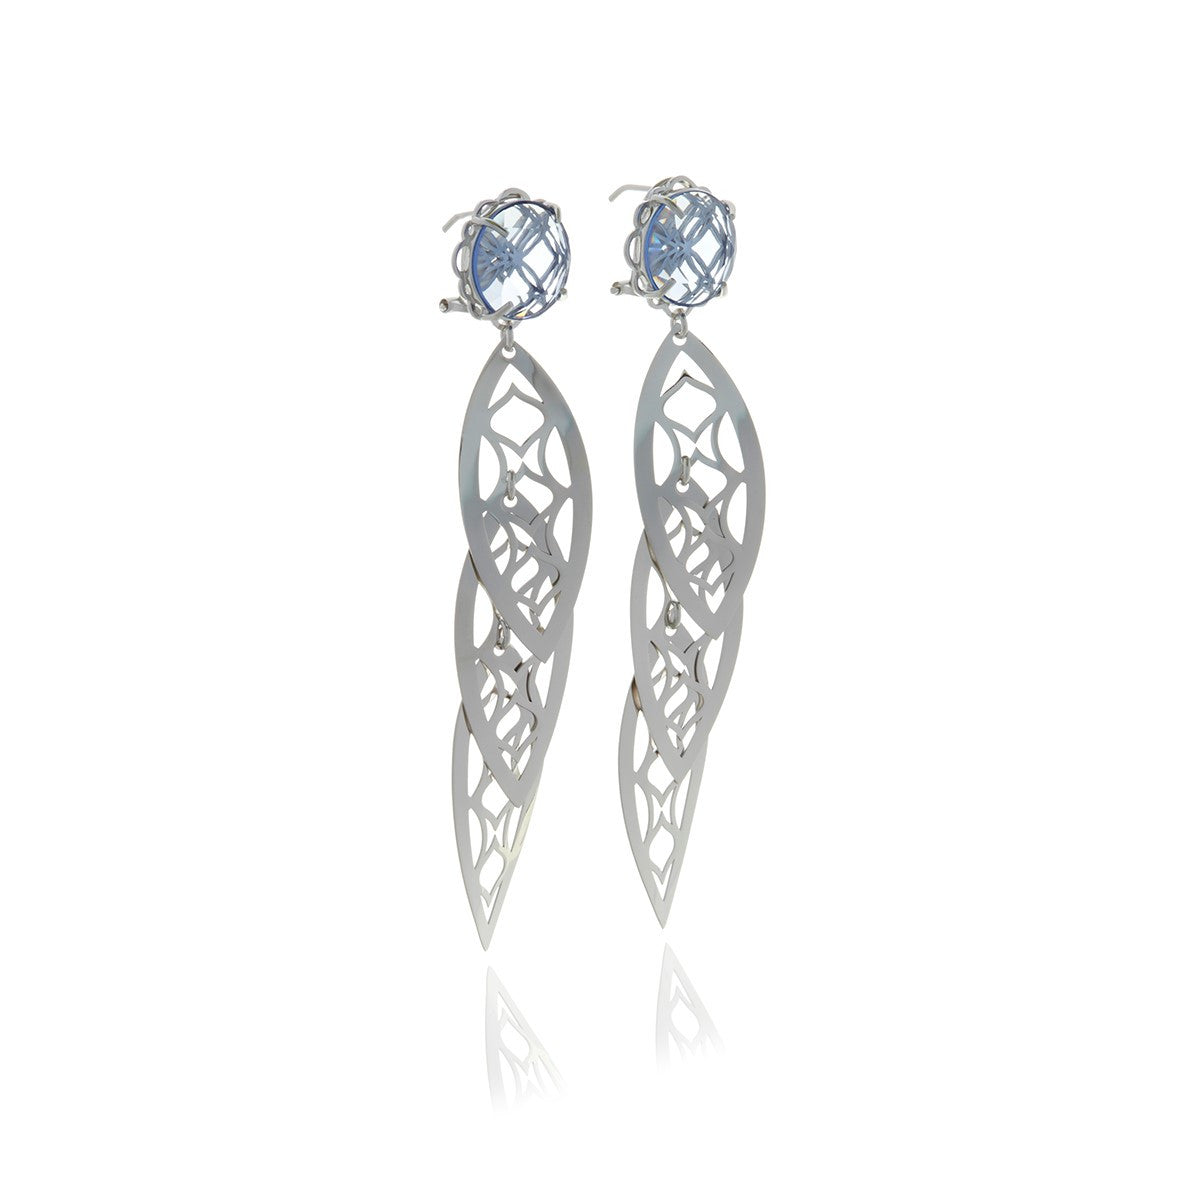 Signature Gold Crystal leaf earrings - MCK Brands